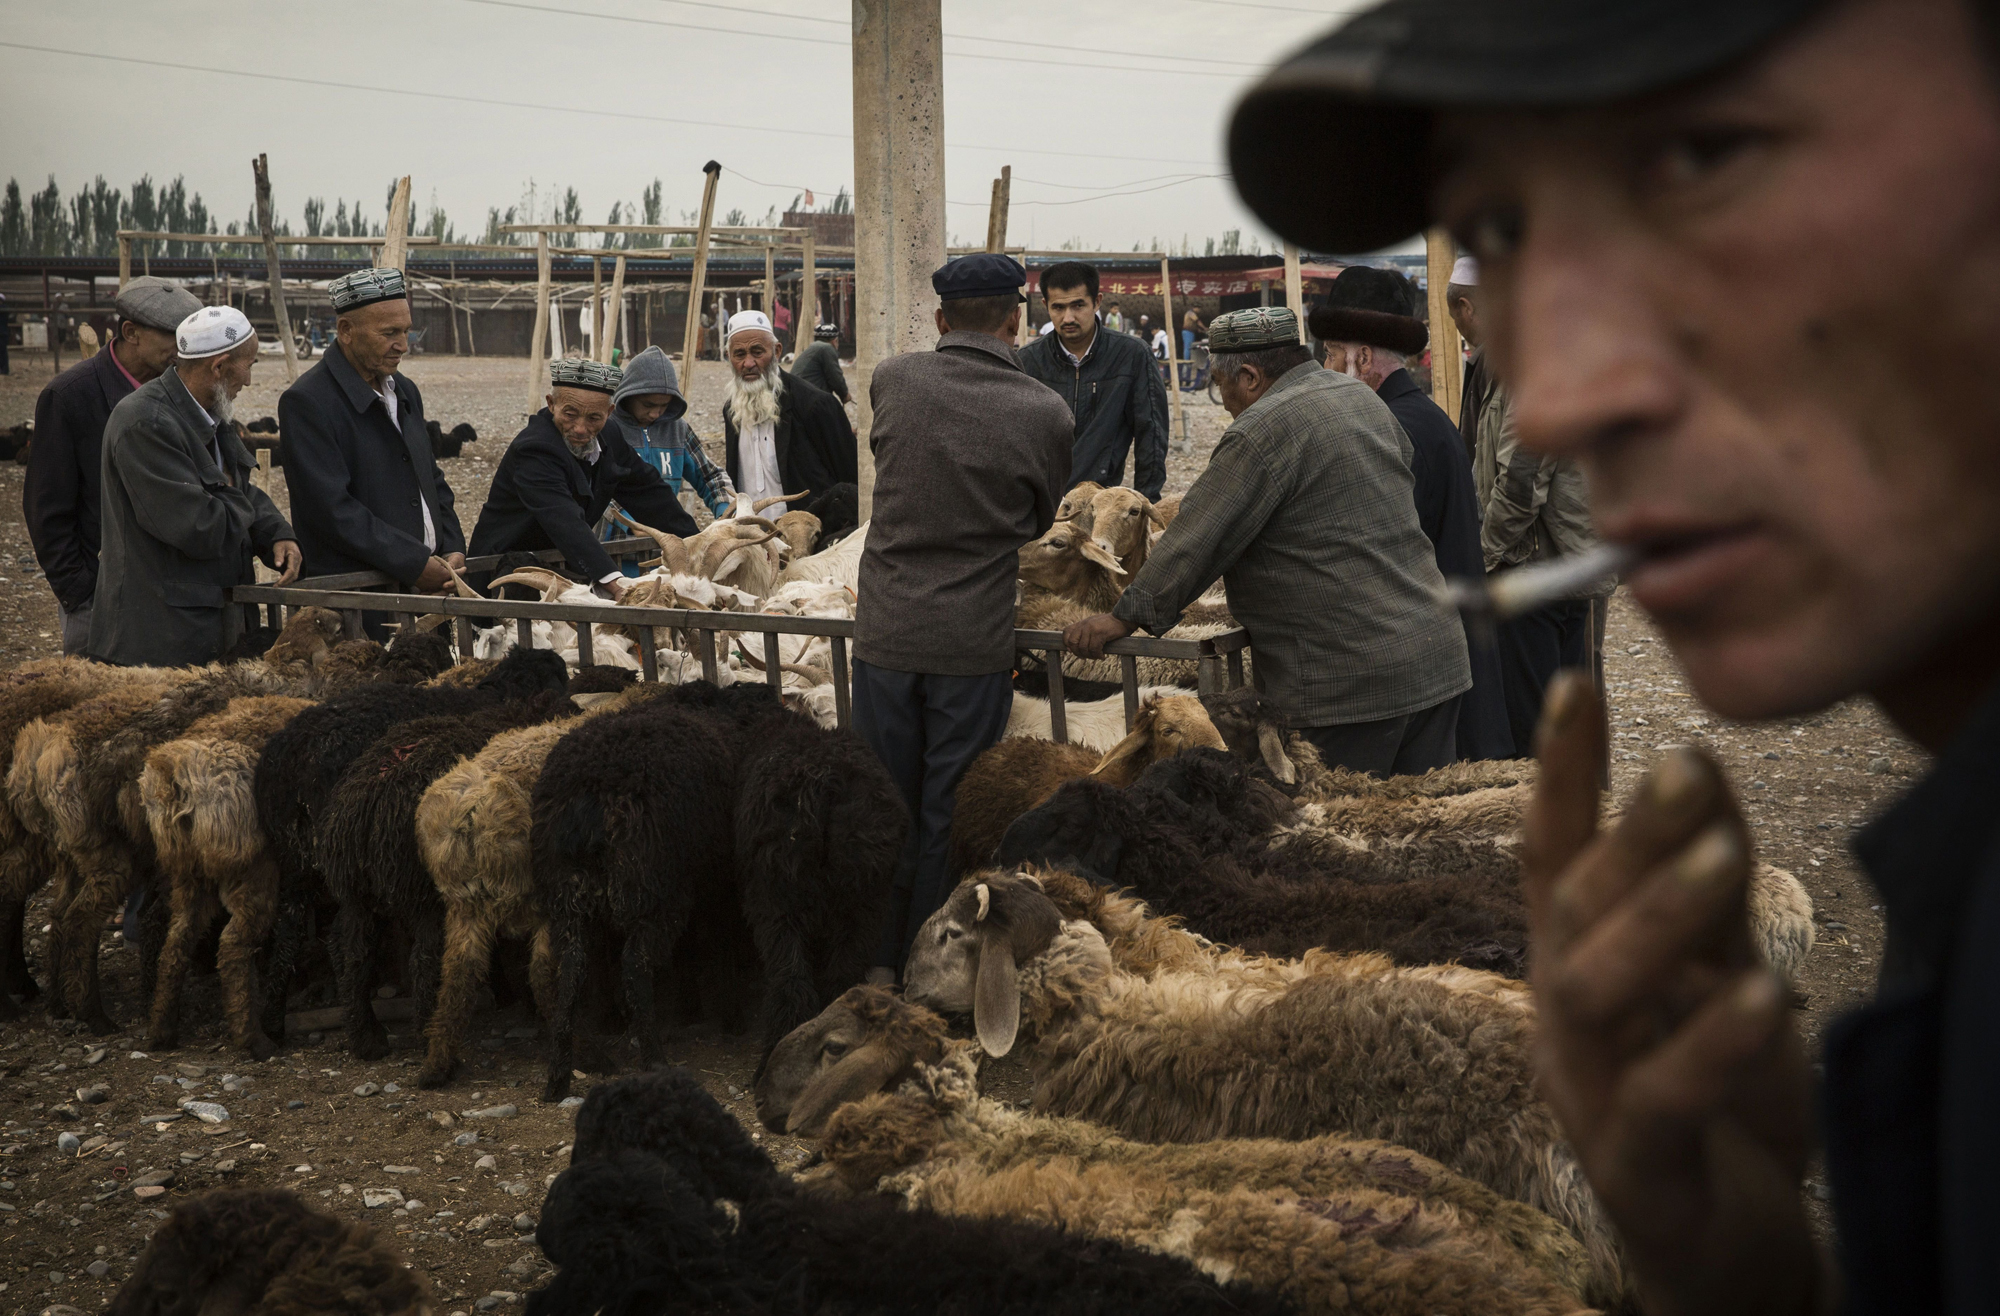 Uighurs inspect sheep for sale at a livestock market on August 3, 2014 in Kashgar.